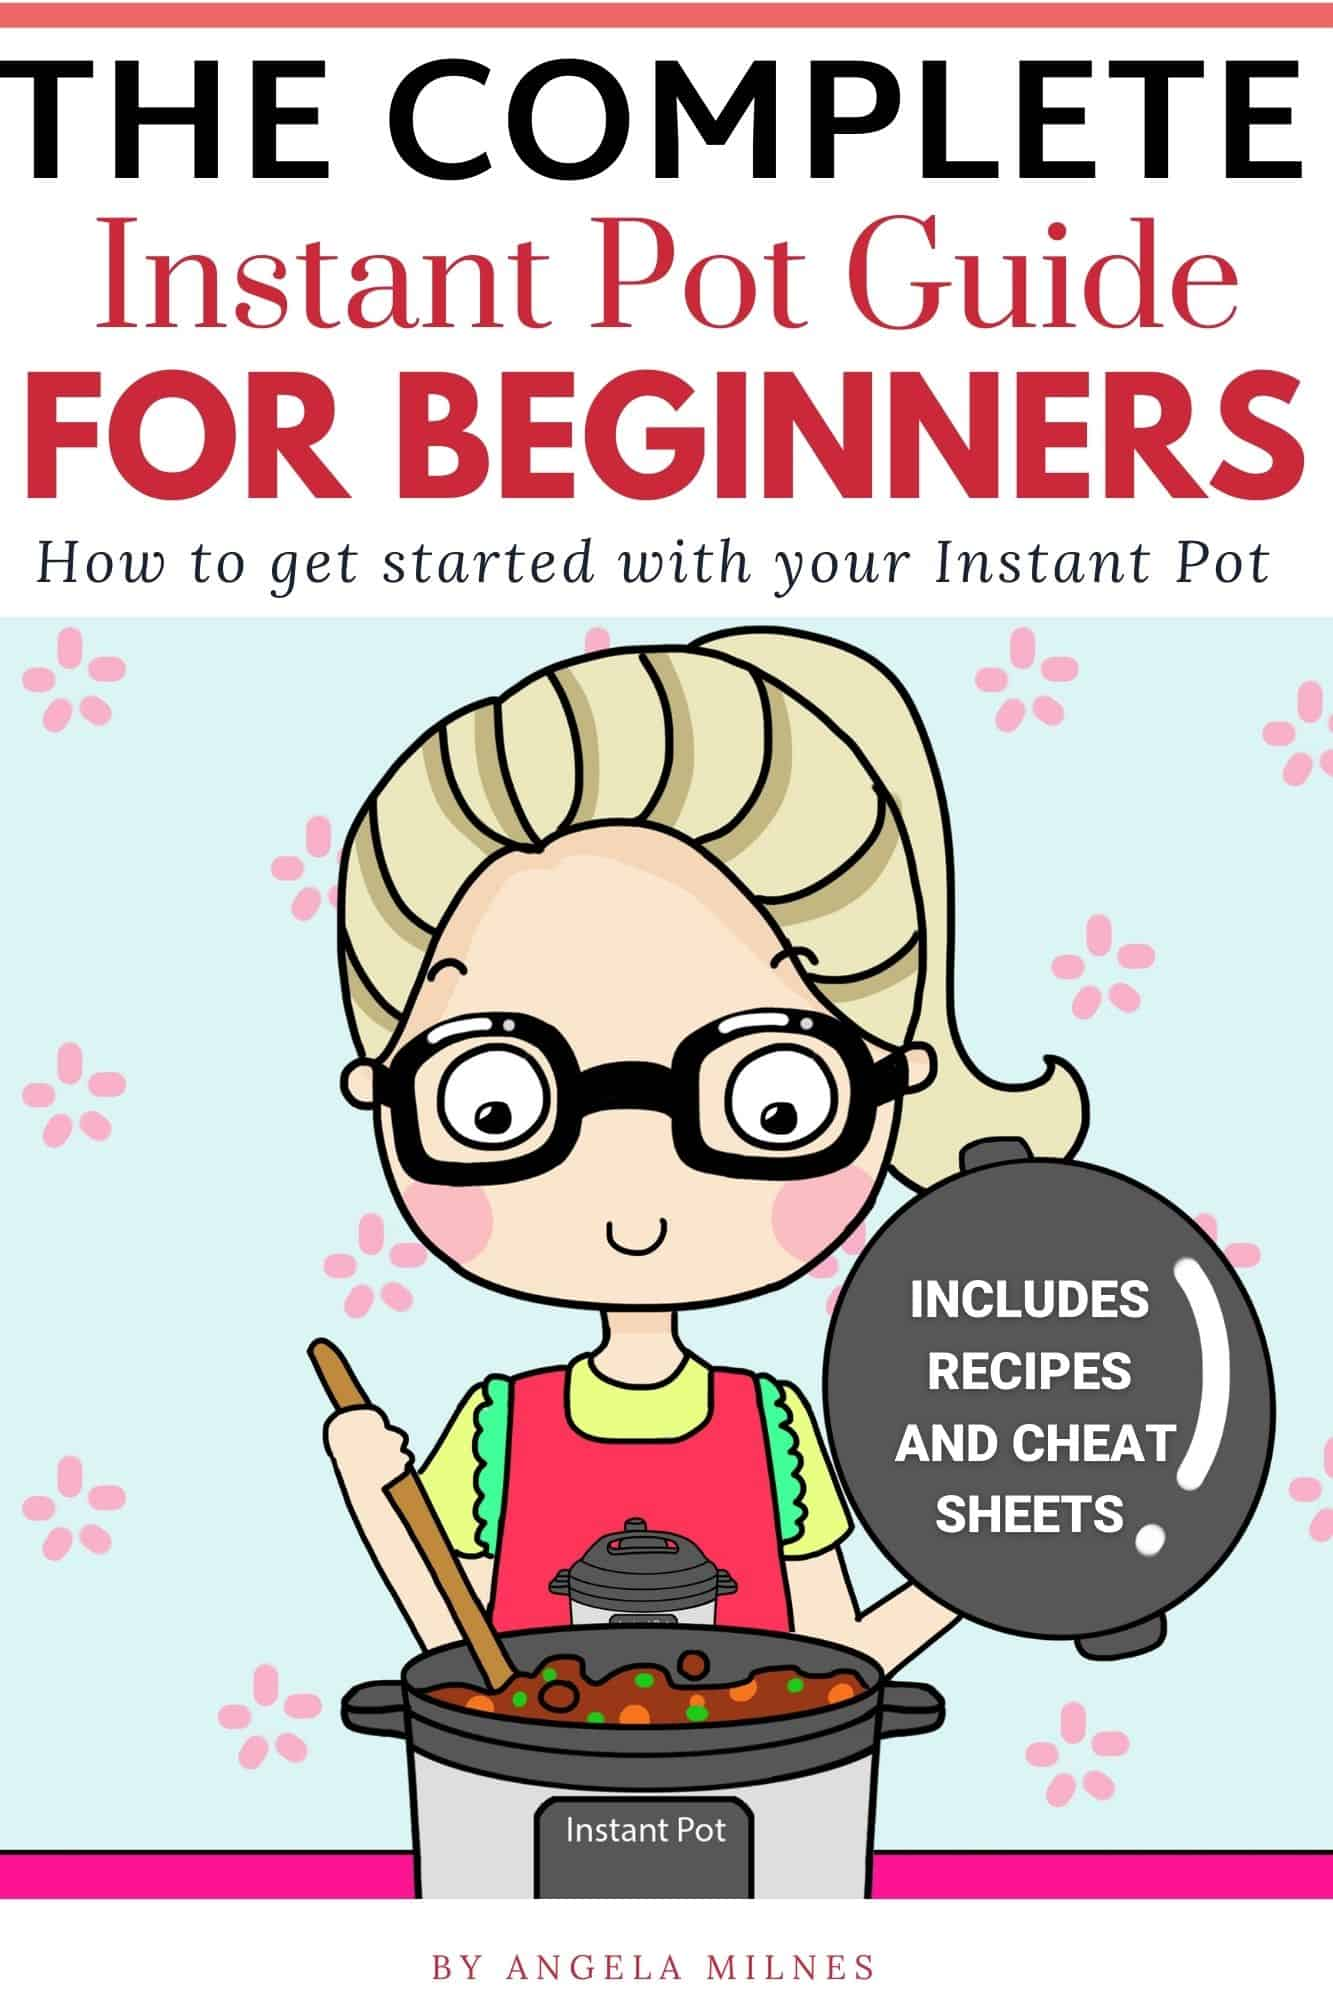 THE COMPLETE INSTANT POT GUIDE FOR BEGINNERS